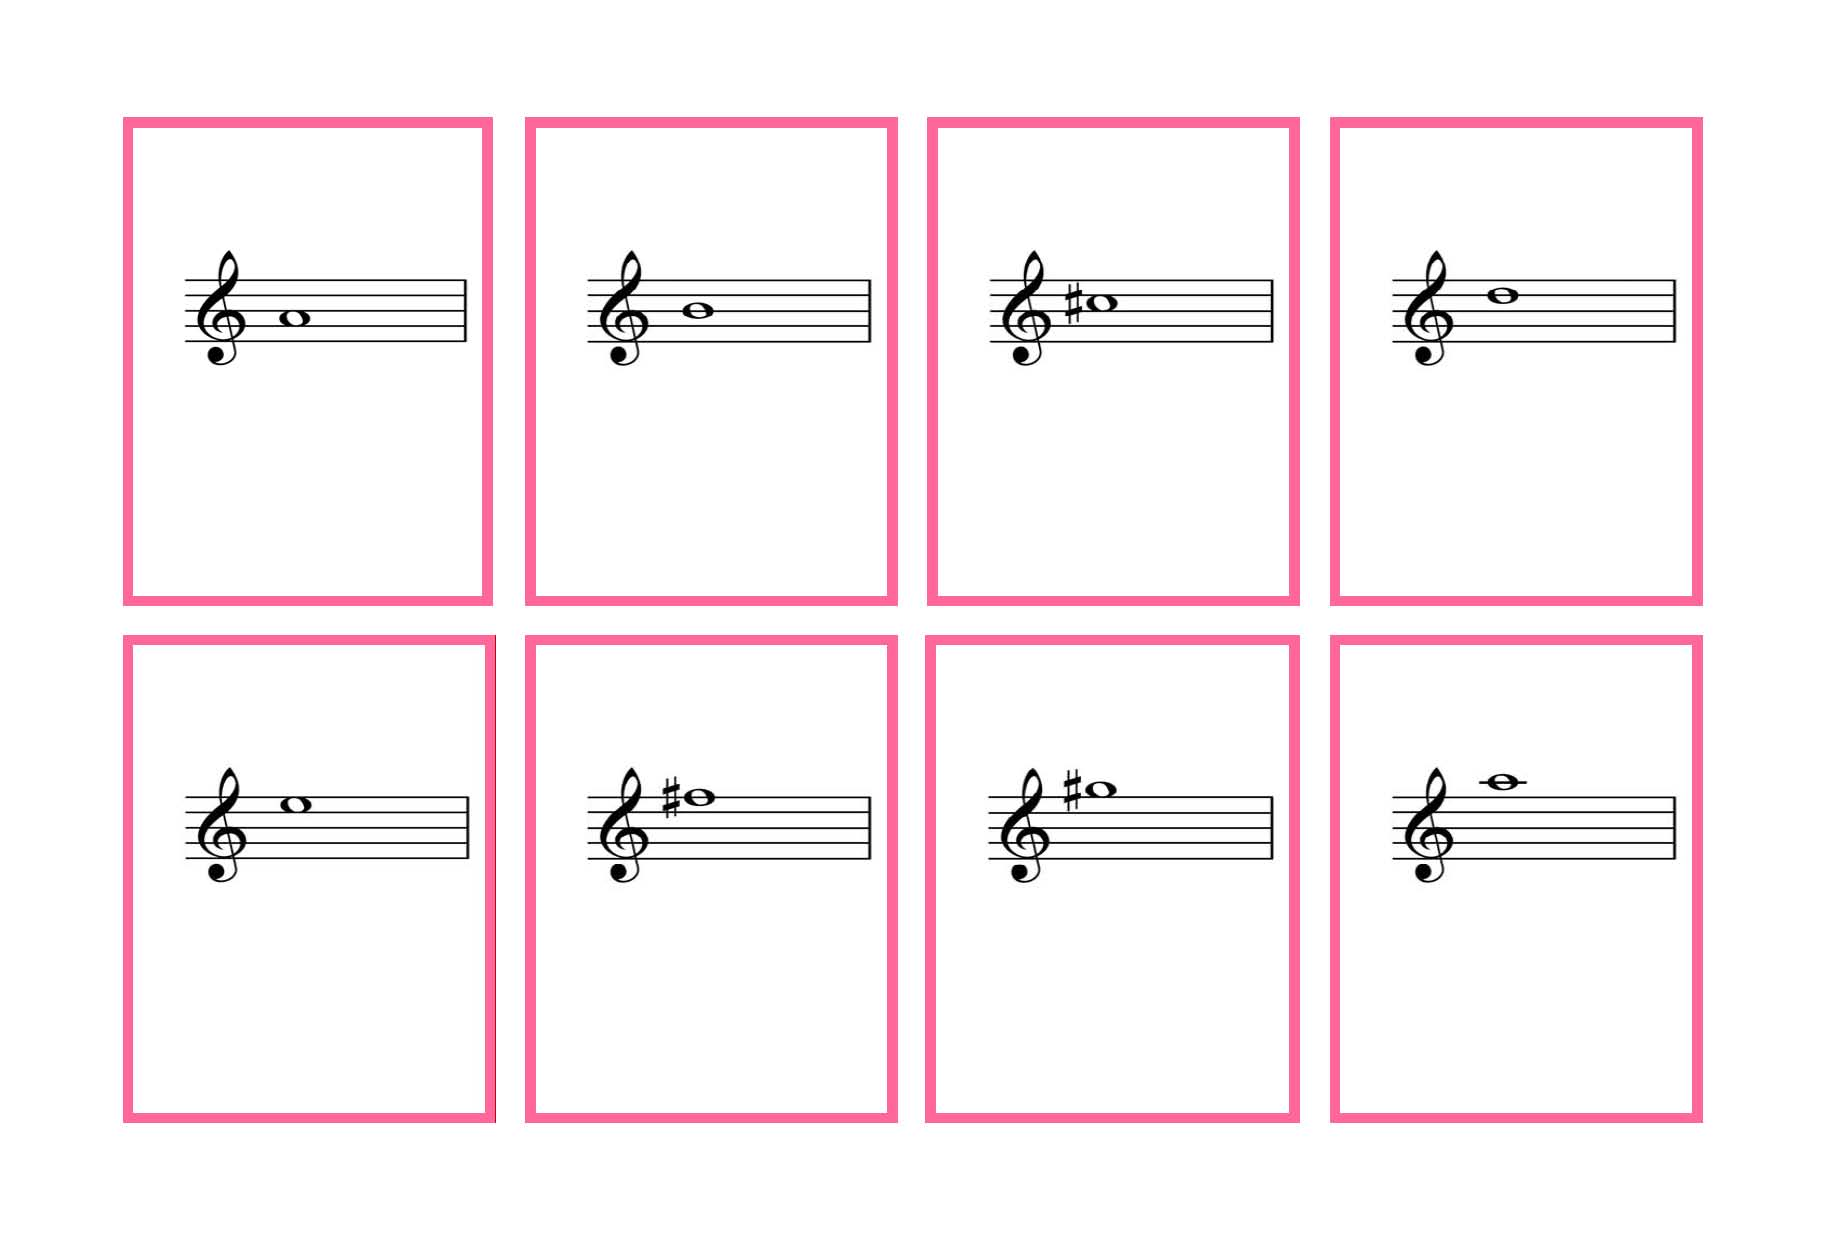 Printables Flash Card For Reading complete set violin flash cards printable denley music posted